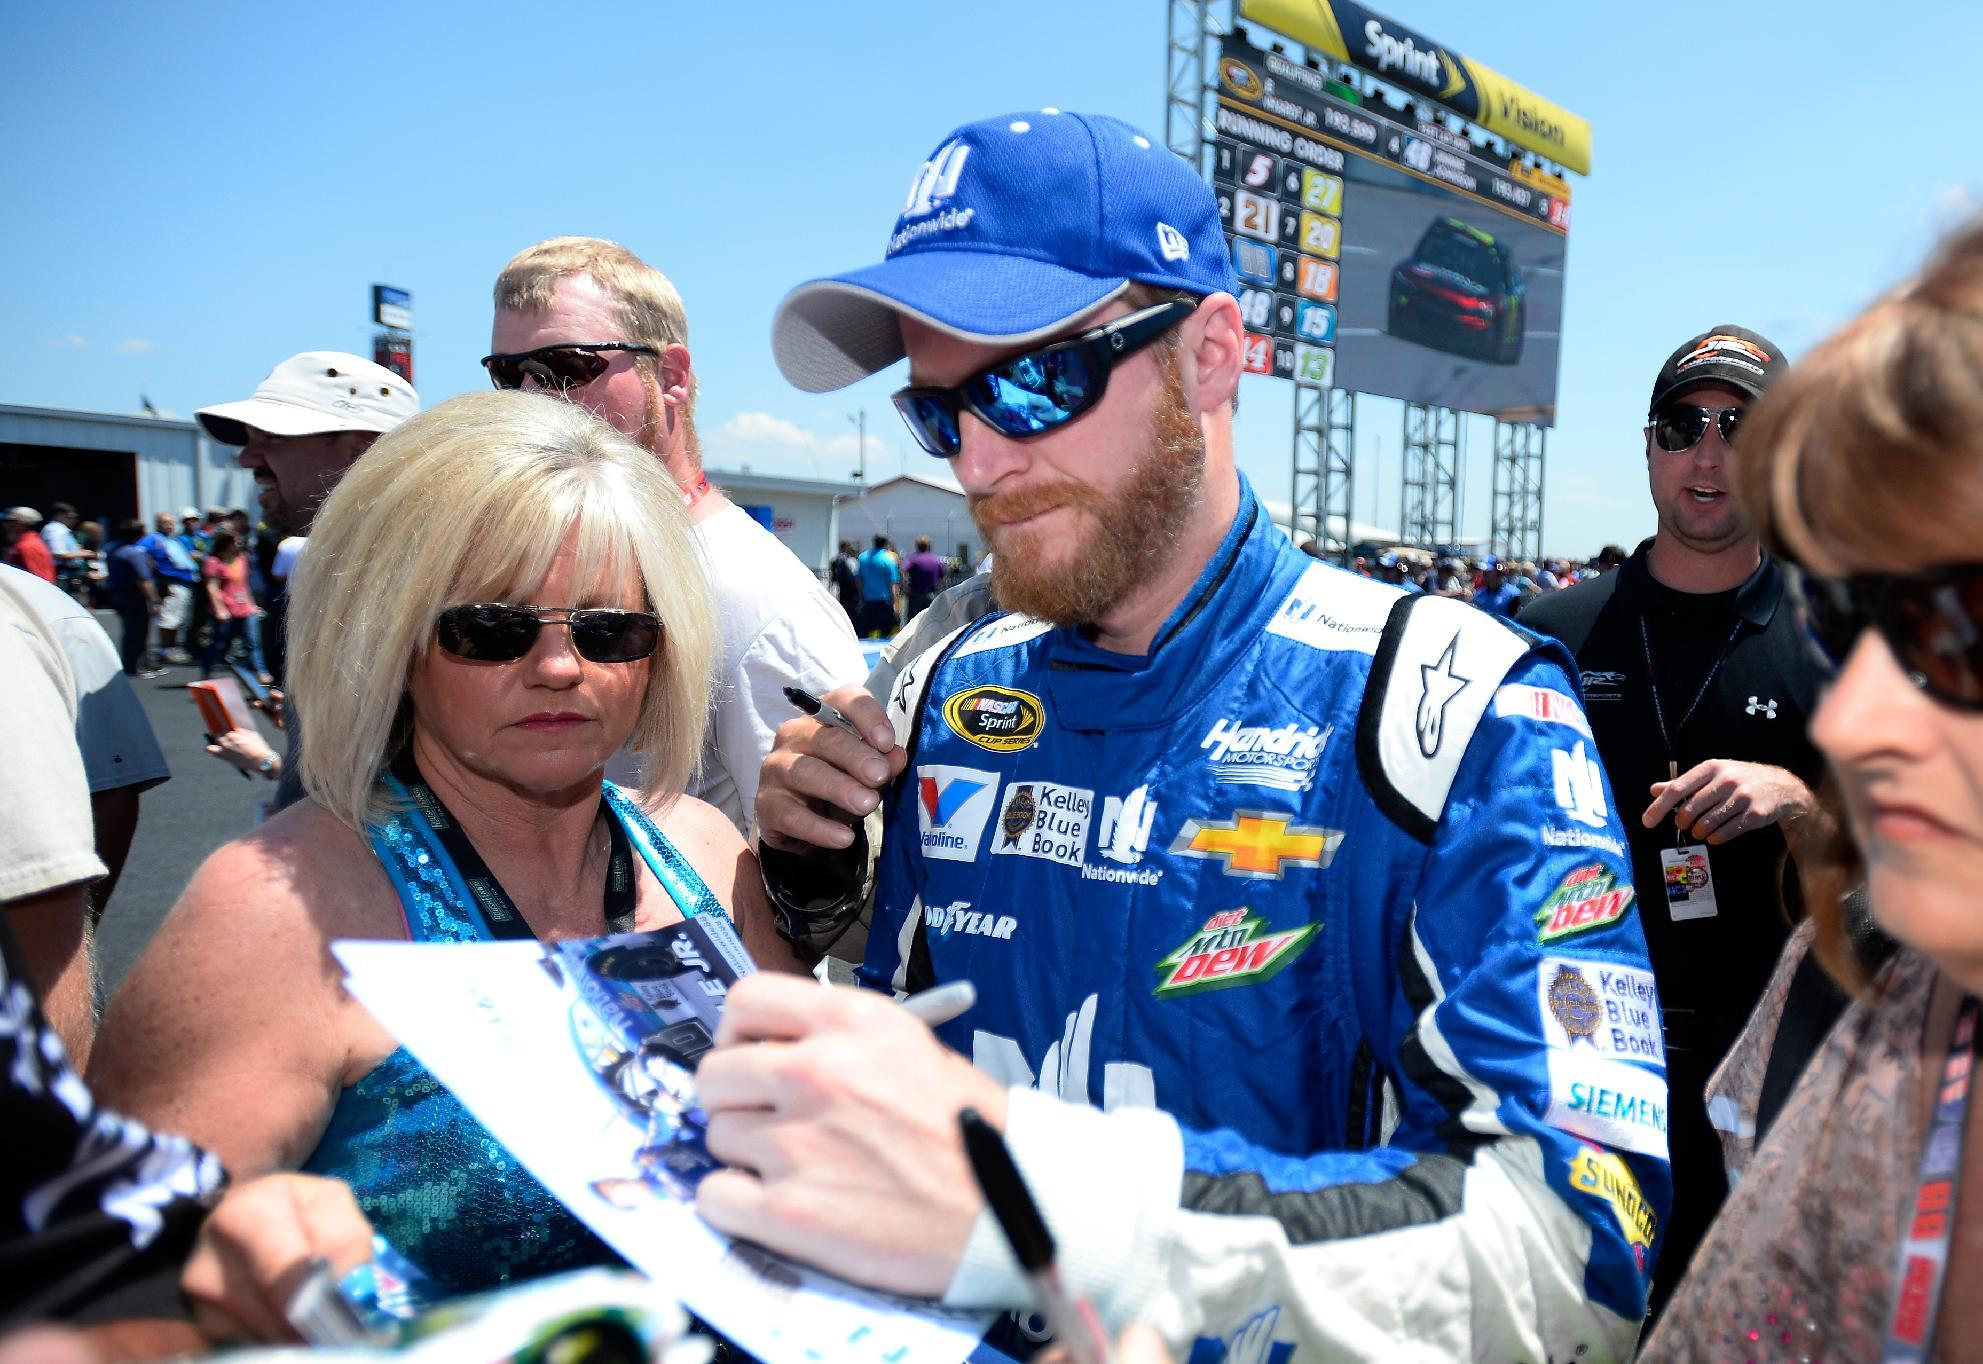 Dale Earnhardt Jr. signs autographs during qualifying for Sunday's NASCAR Sprint Cup Series auto race at Talladega Superspeedway, Saturday, May 2, 2015, in Talladega, Ala. (AP Photo/David Tulis)